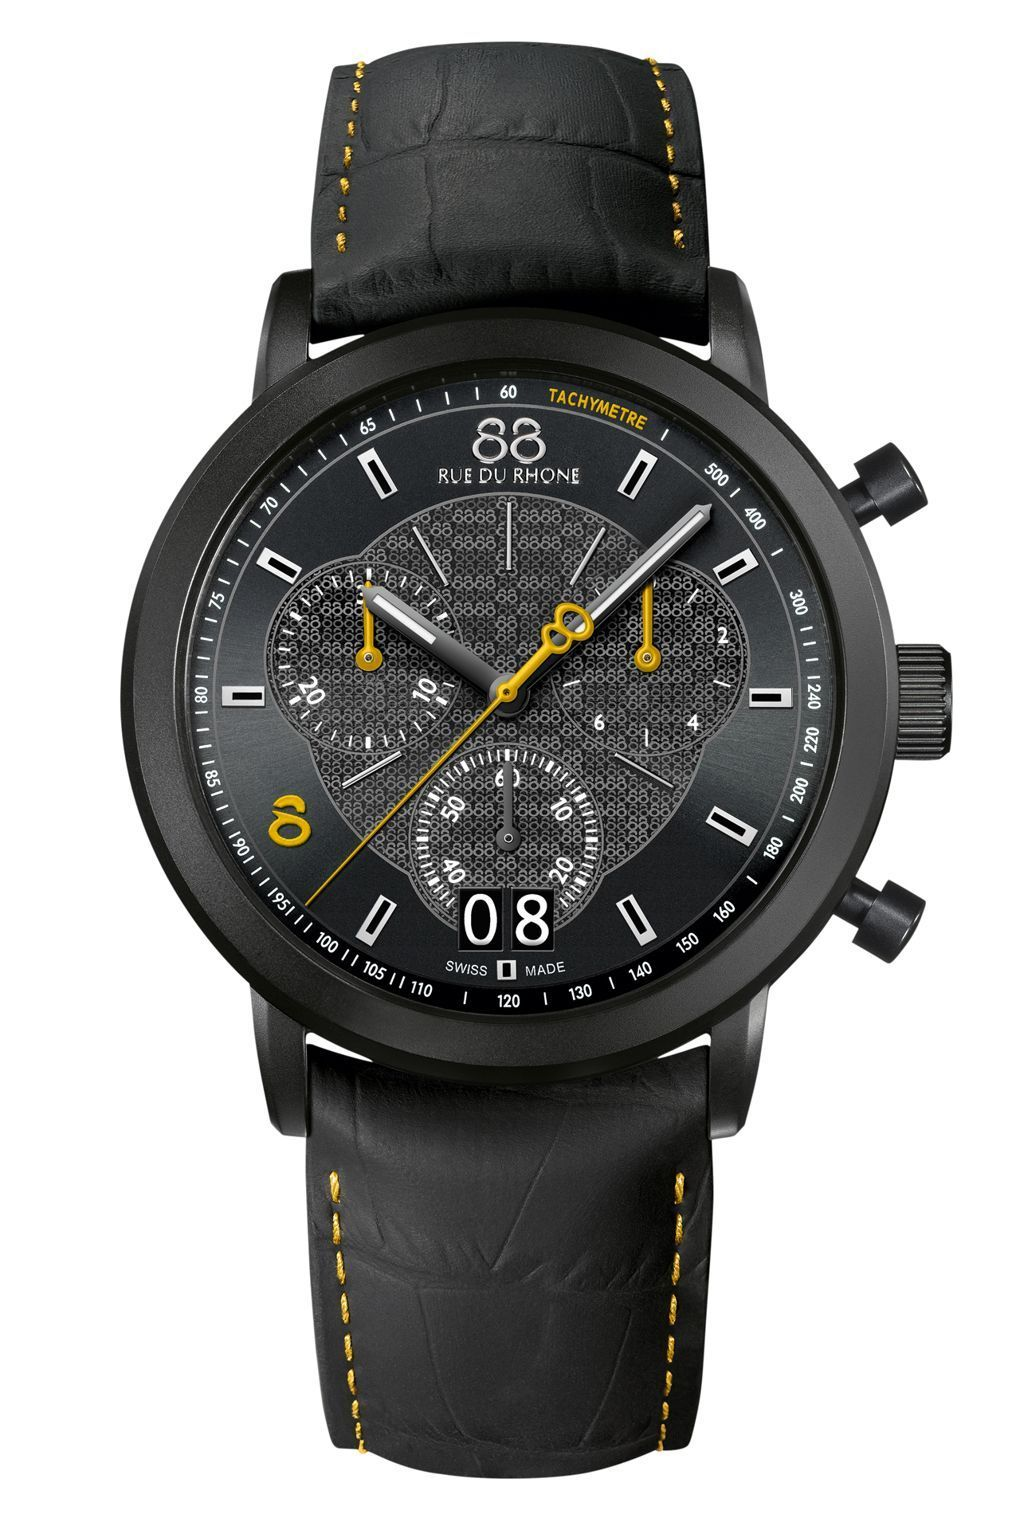 makes watch beautifully gq designed and why pin mvmt rate playboy mens a statement sporting see watches